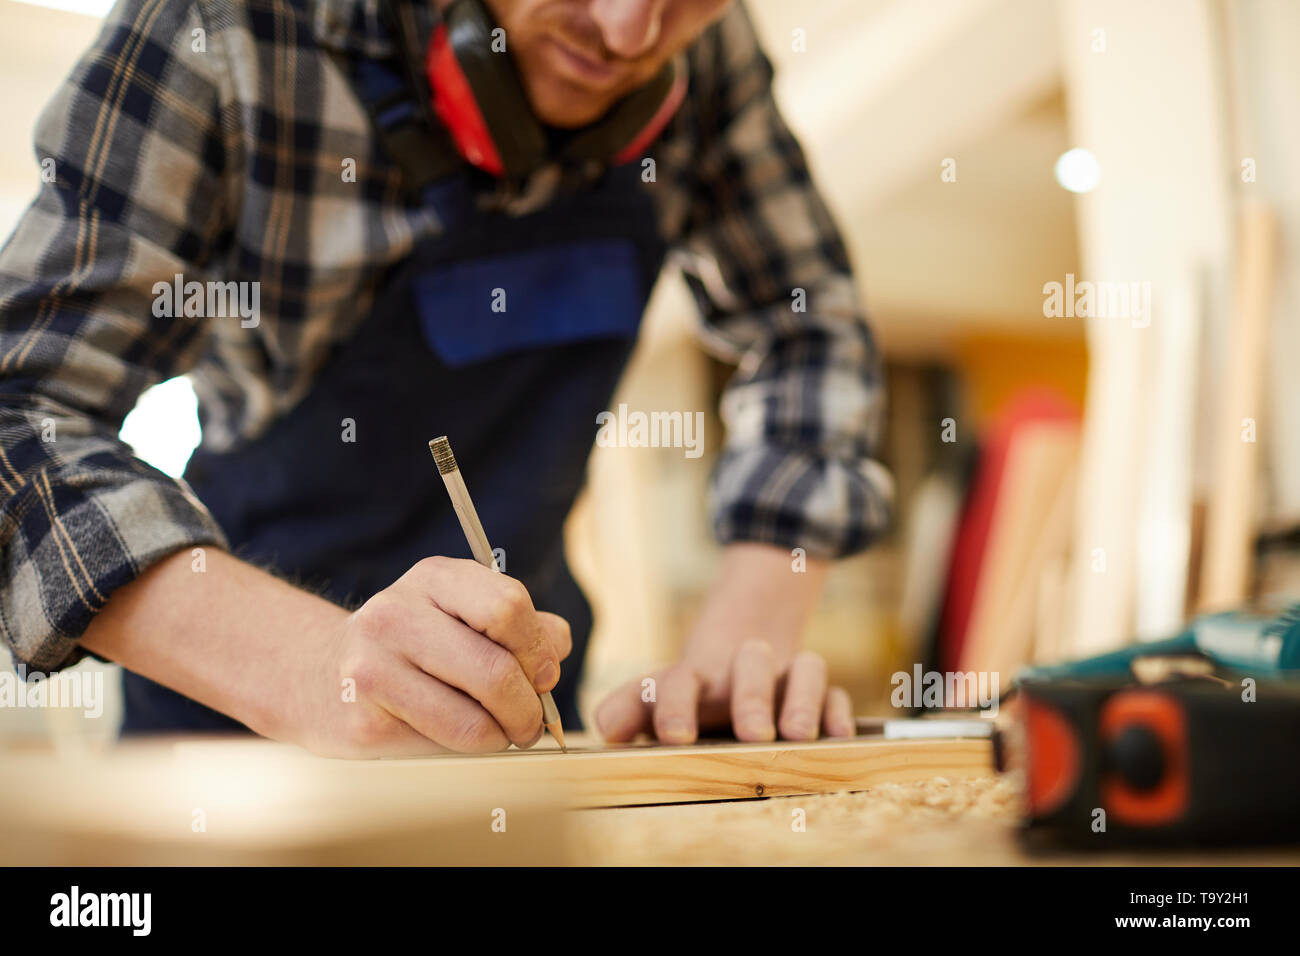 Mid section portrait of modern carpenter marking wood while working in joinery lit by sunlight, copy space - Stock Image